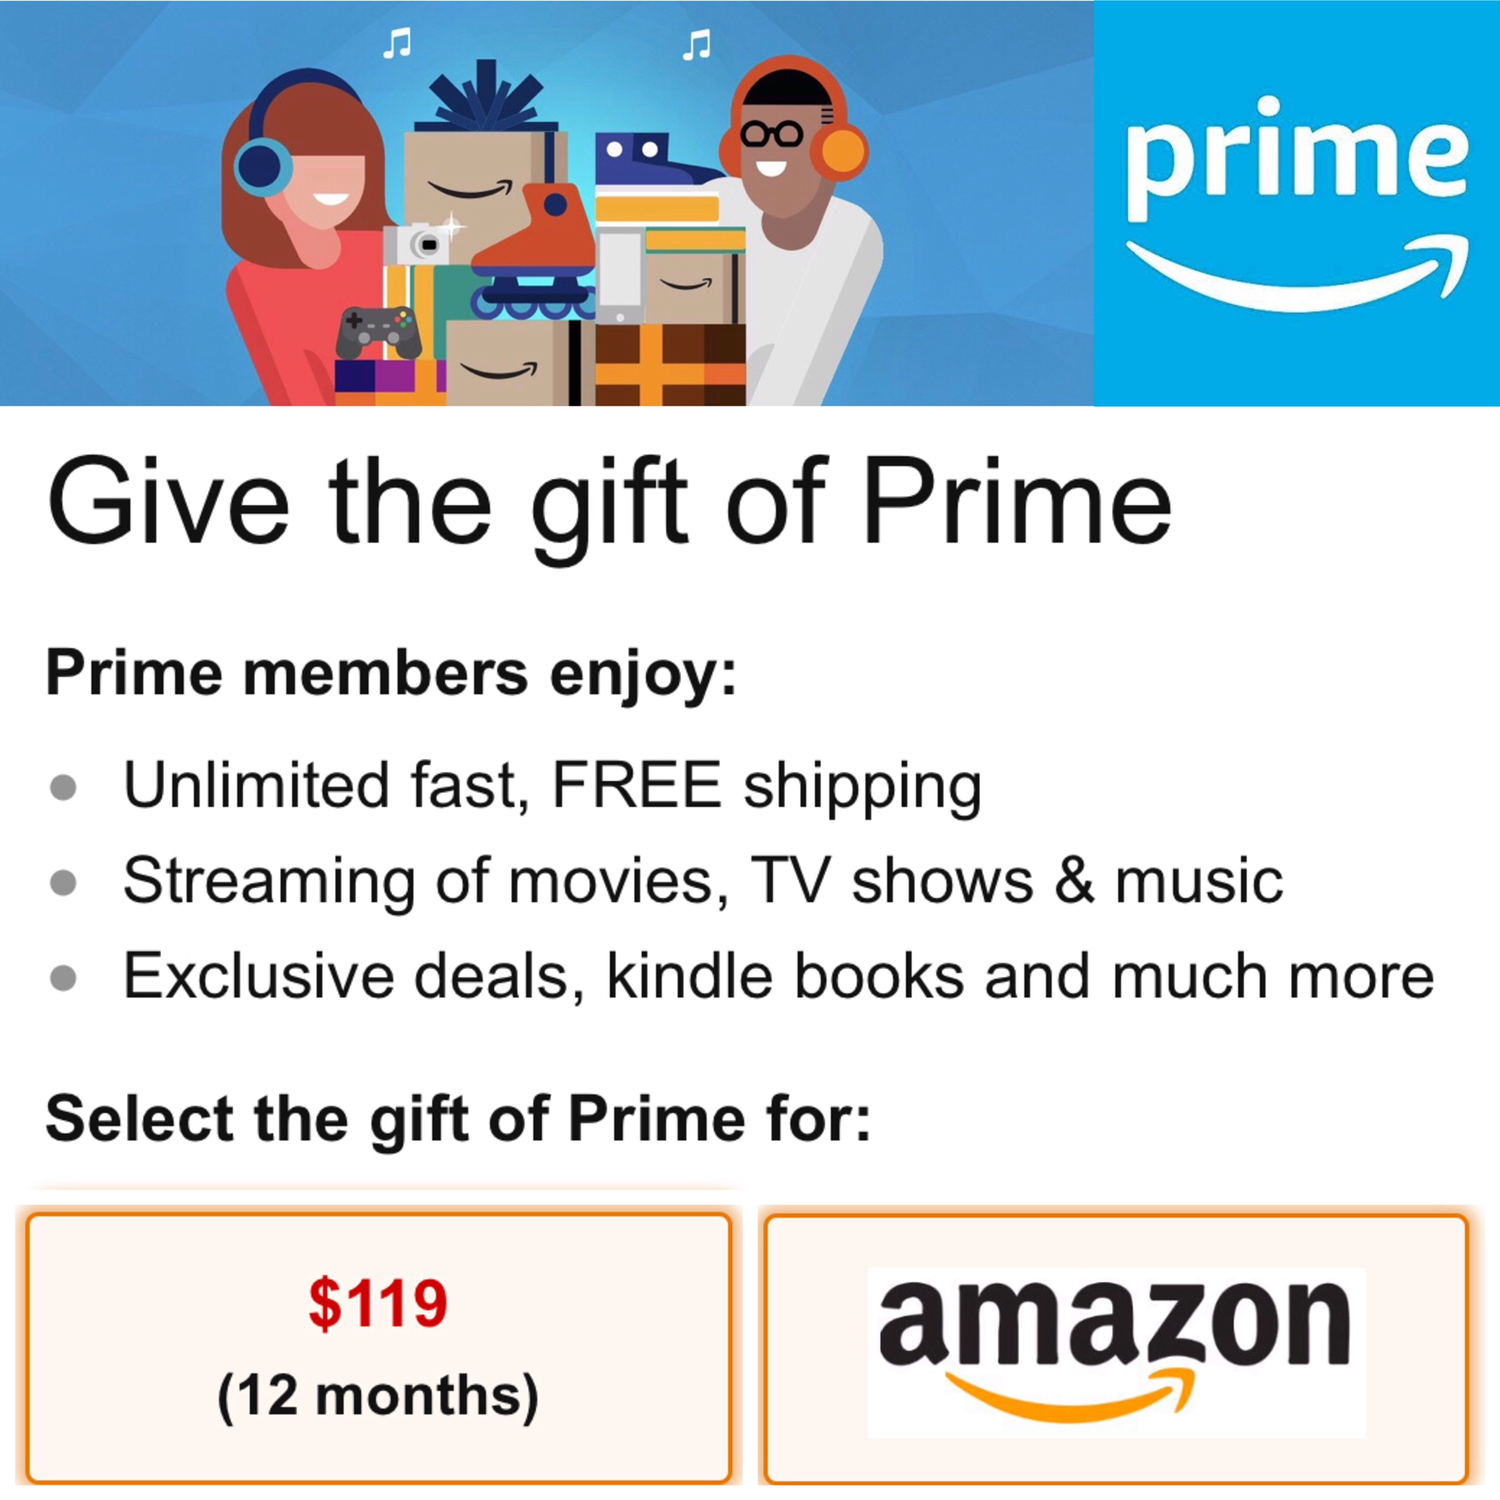 Amazon Prime Give the gift of Prime 12 Months $119